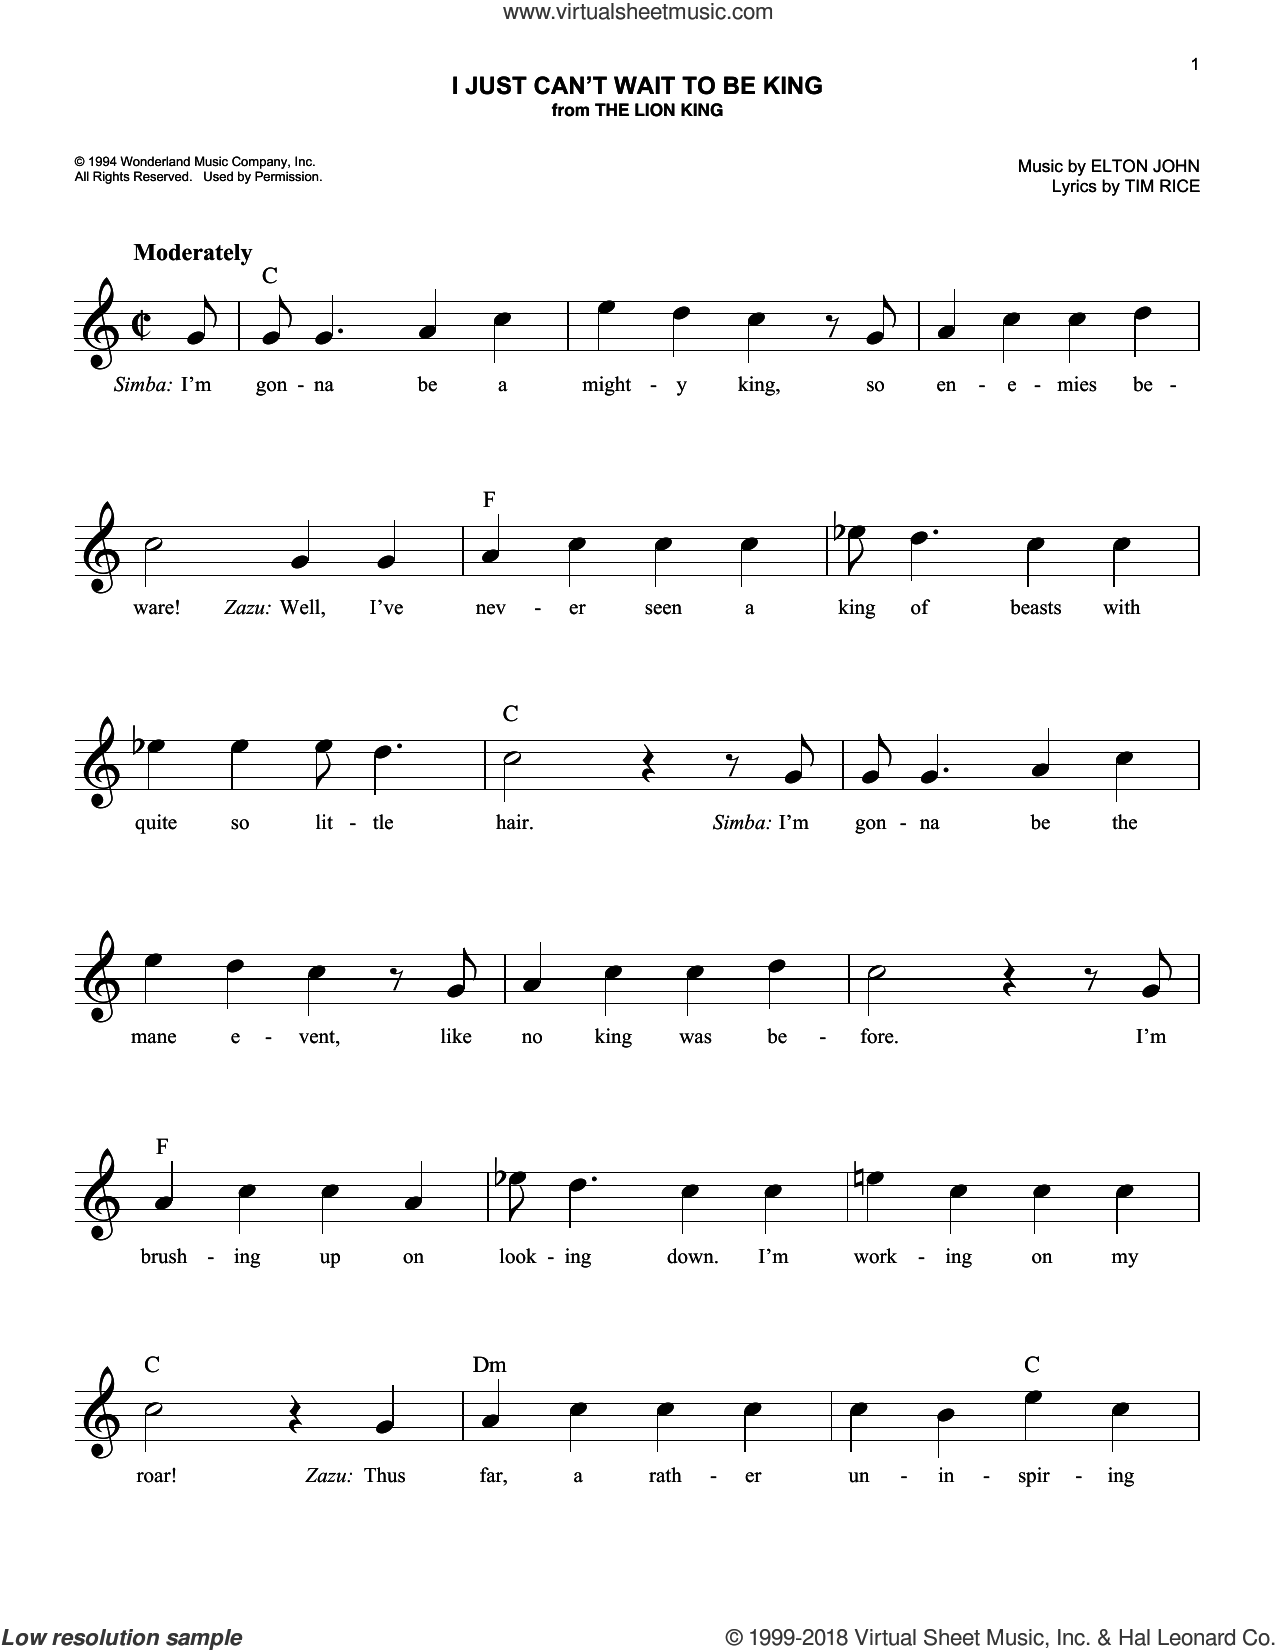 I Just Can't Wait To Be King (from The Lion King) sheet music for voice and other instruments (fake book) by Elton John and Tim Rice, intermediate skill level